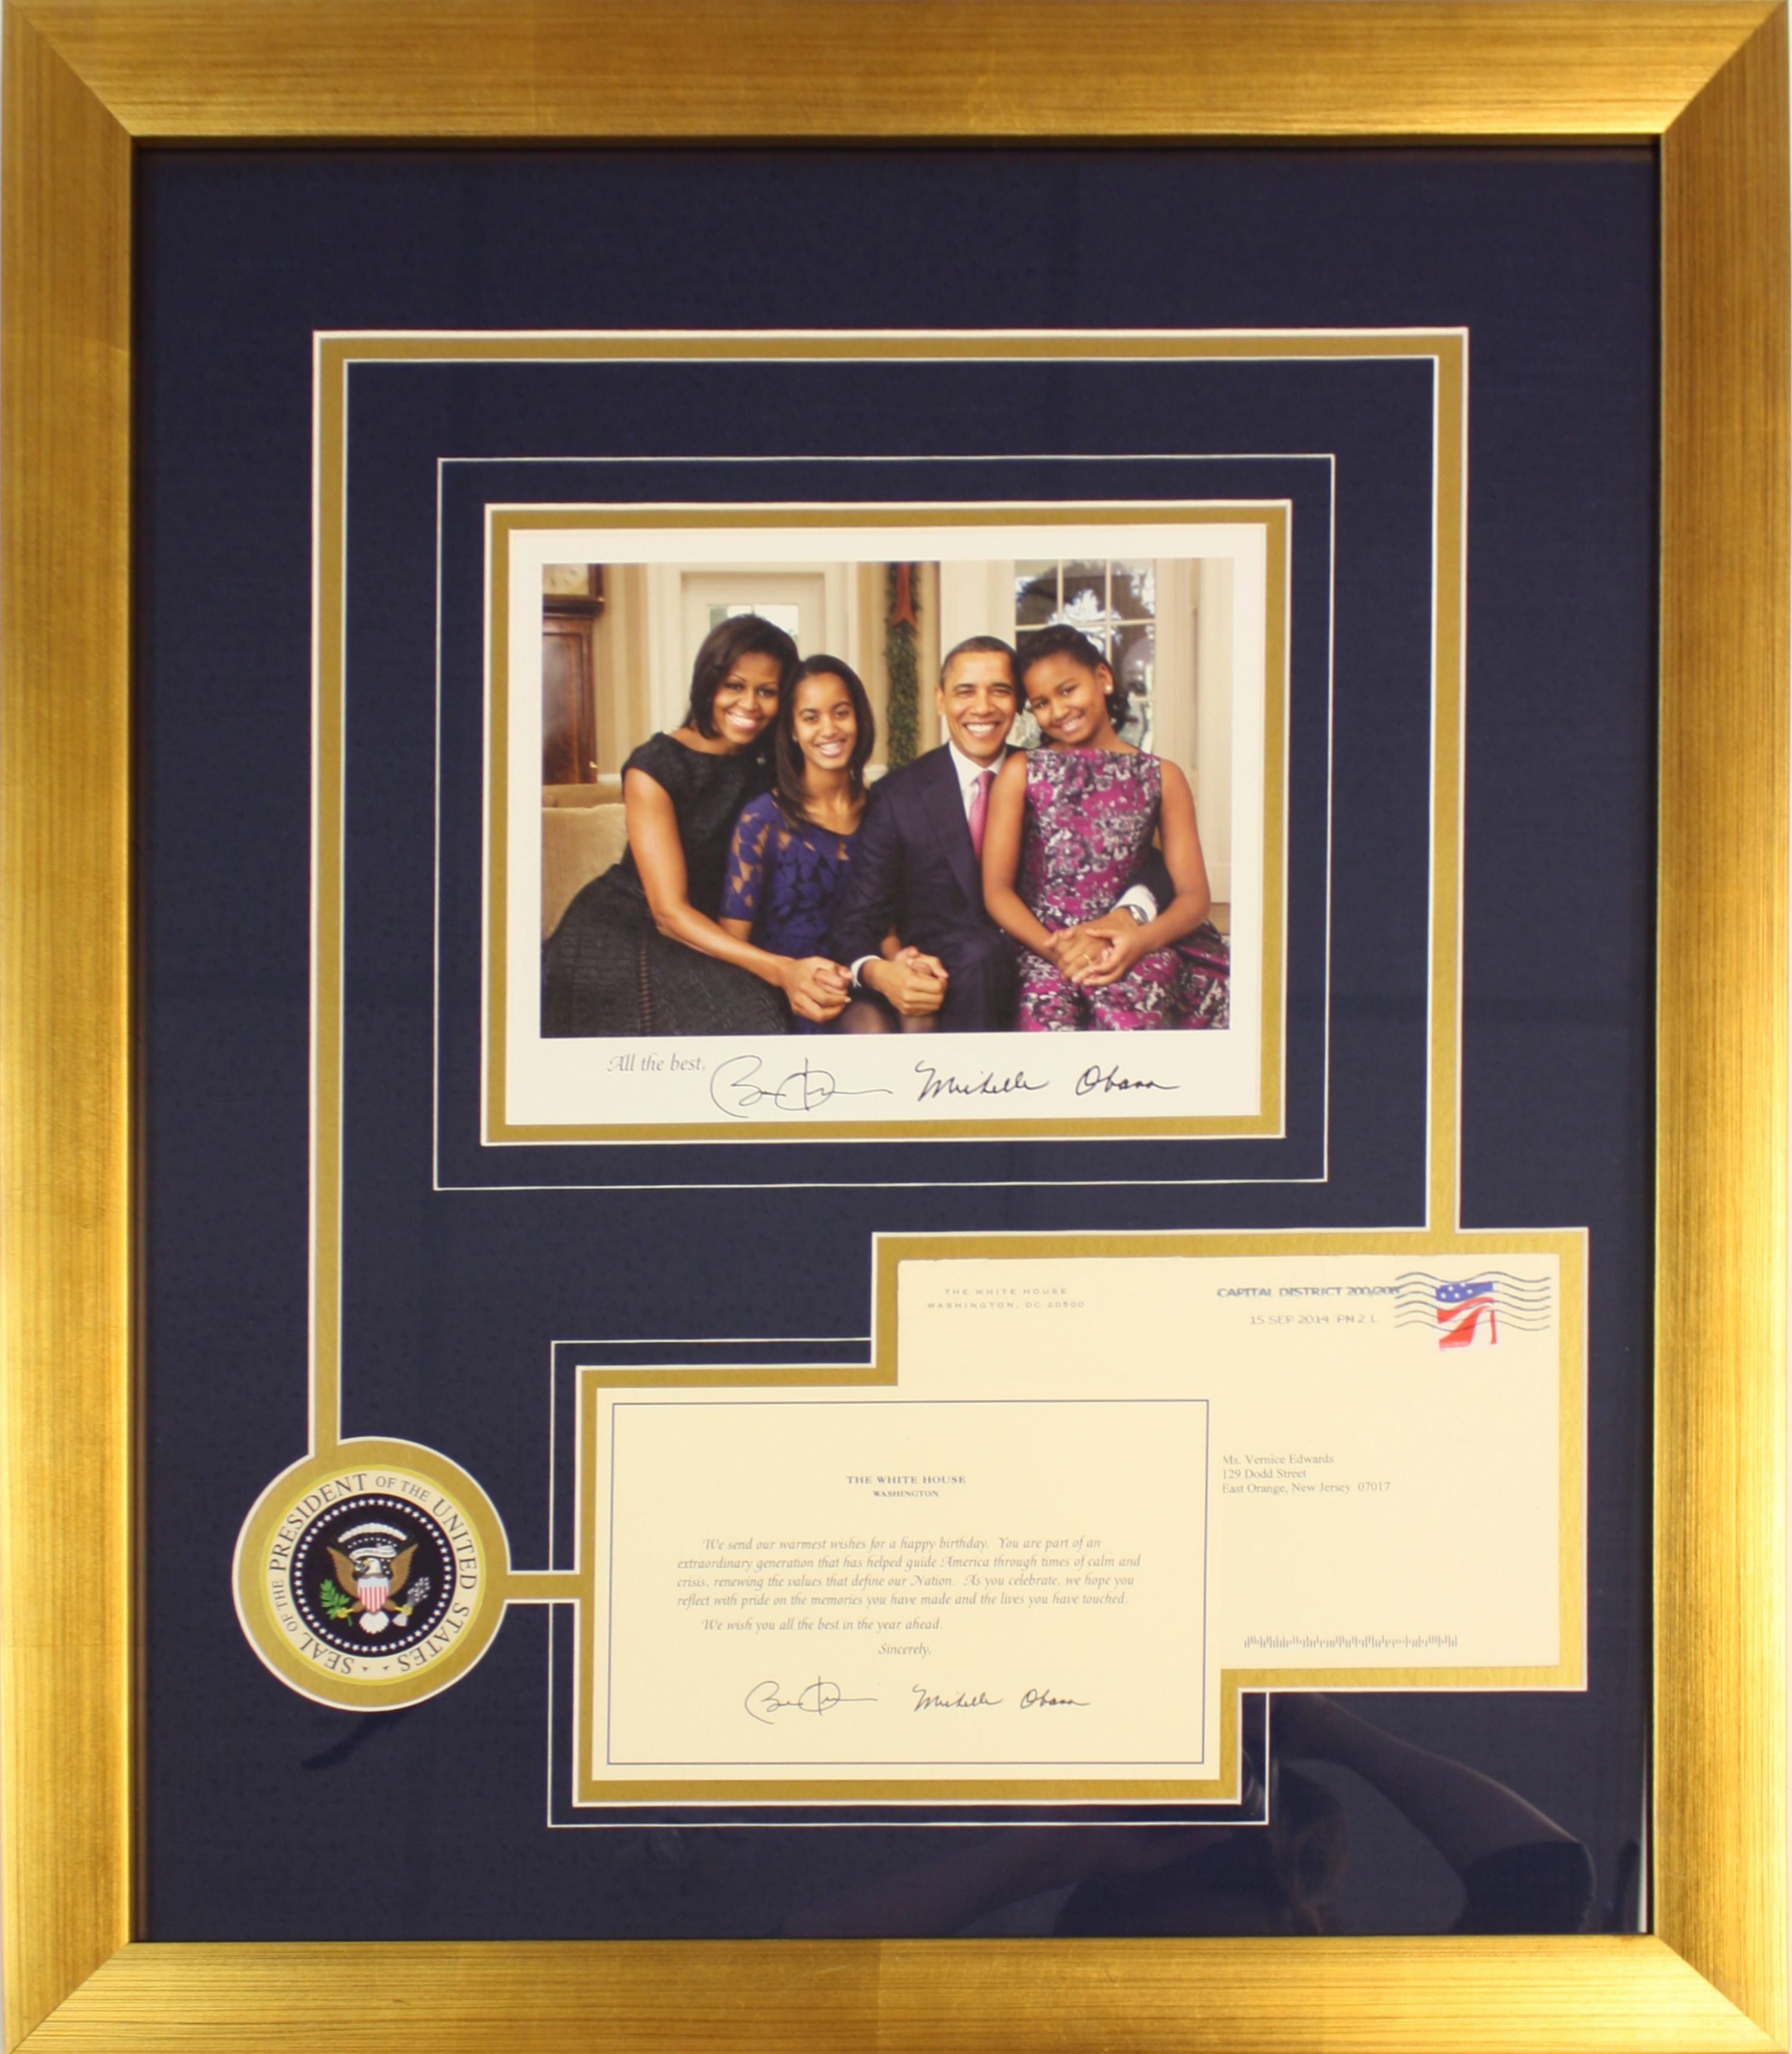 Framed presidential photo accompanied by a letter received from preserved in a gold brushed frame with blue and gold fabric mat boards cut into a custom design jeuxipadfo Choice Image